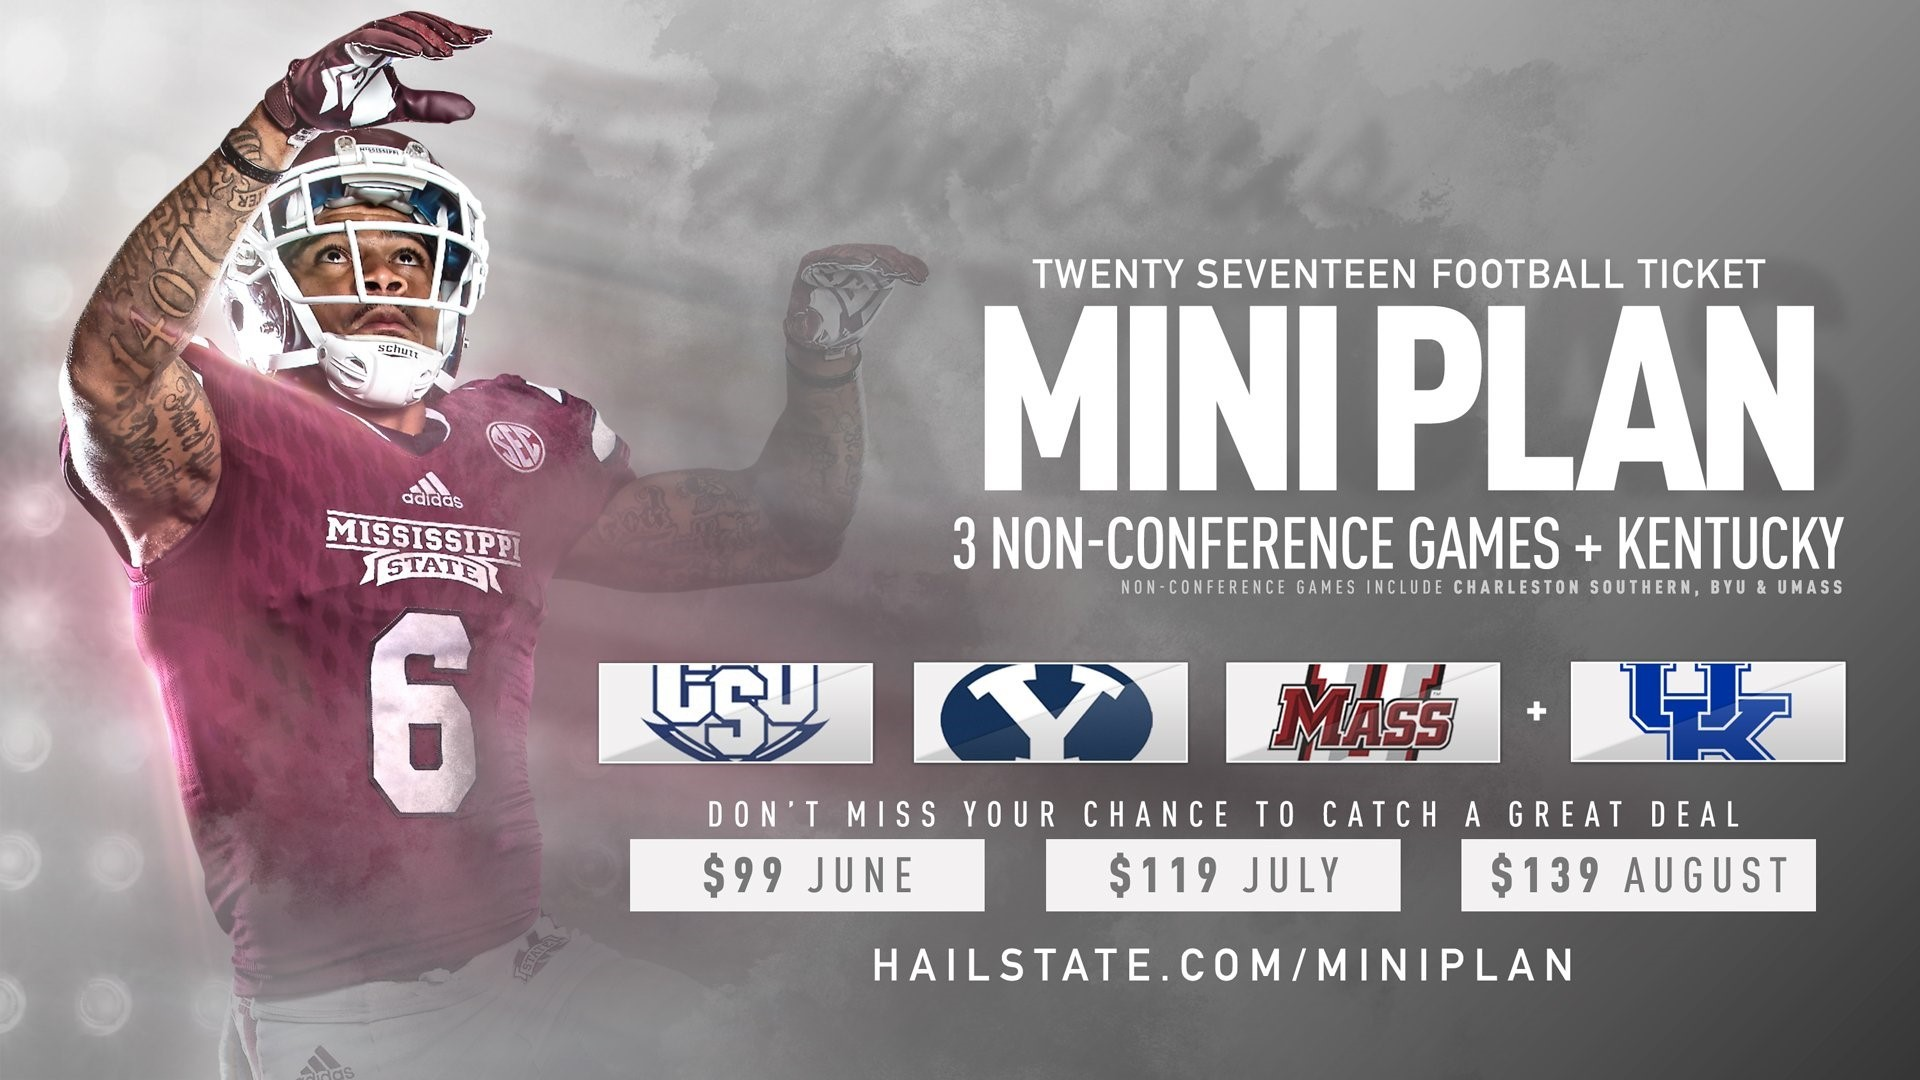 Football Ticket Mini-Plans on Sale Now, Special $99 in June